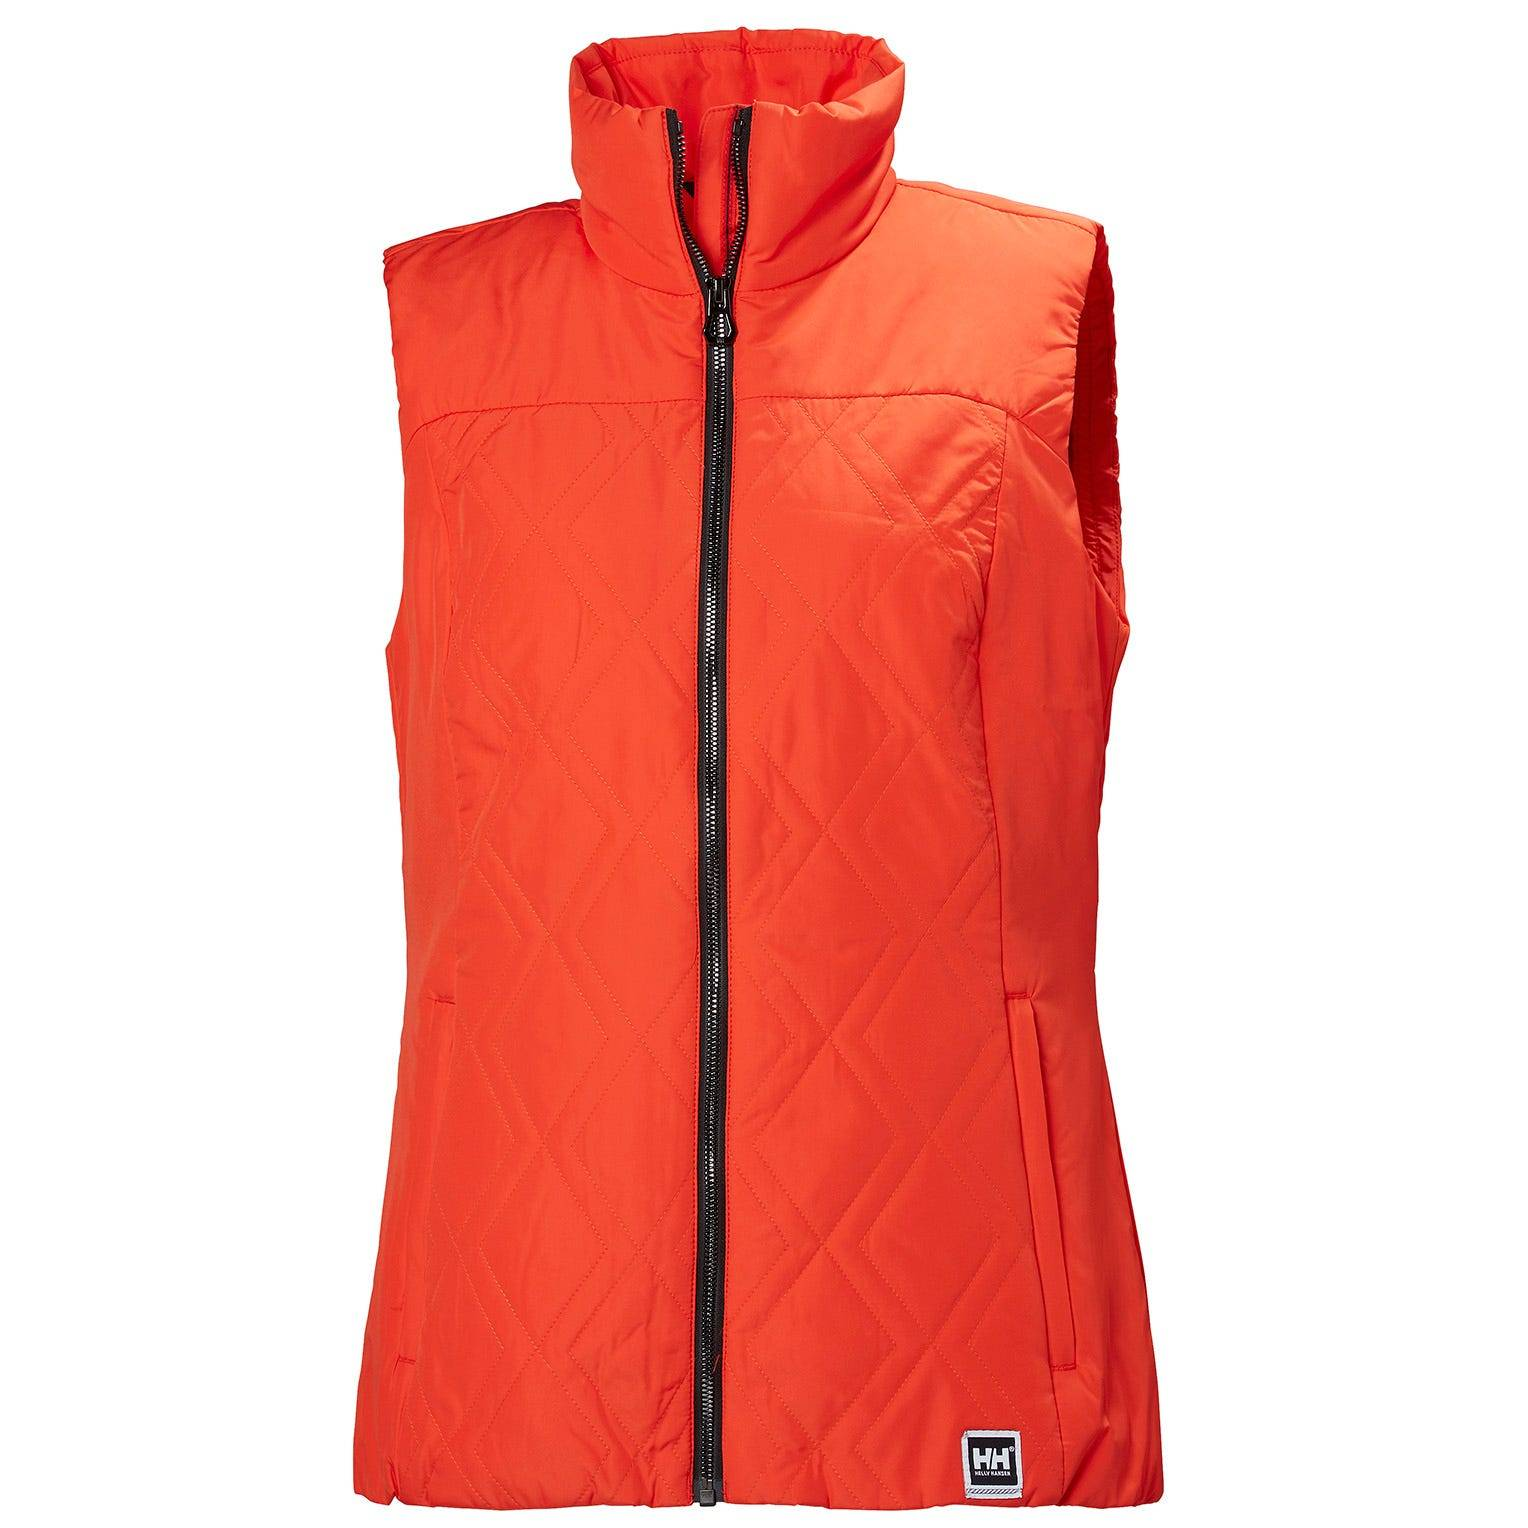 Helly Hansen W Crew Insulator Vest Womens Sailing Jacket Red S